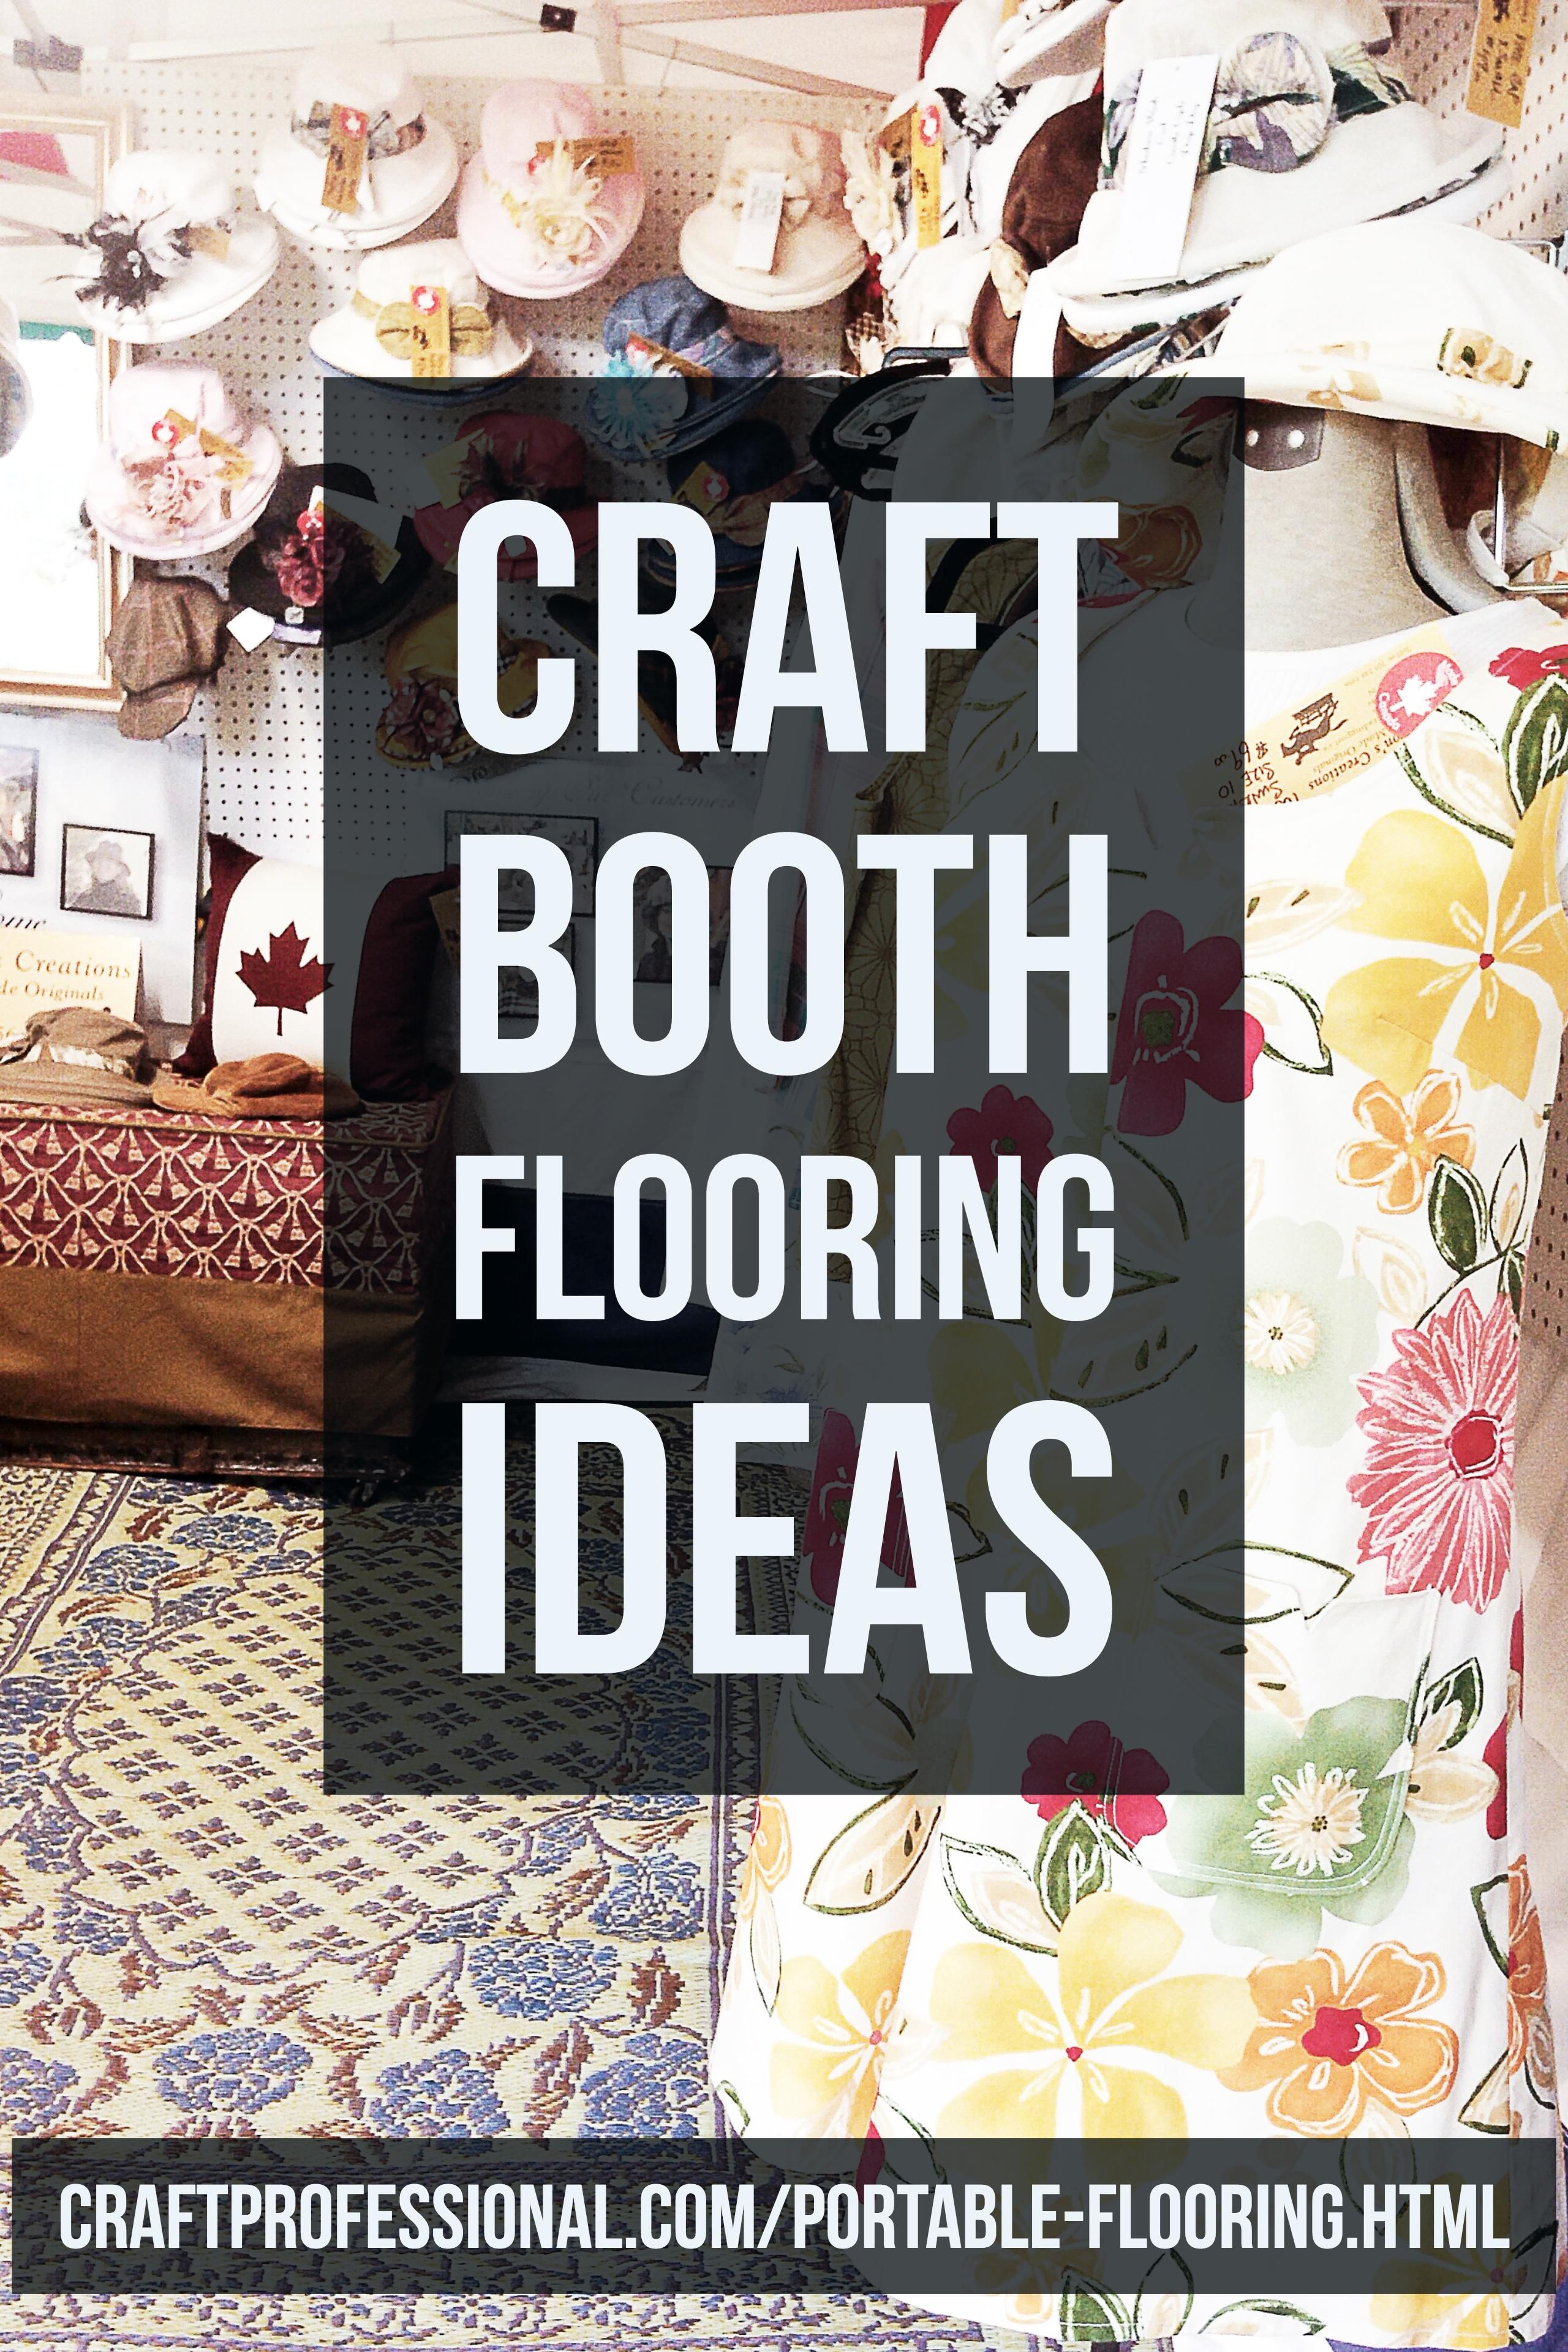 Portable Flooring Ideas For Your Craft Booth Craft Booth Displays Craft Booth Craft Fairs Booth